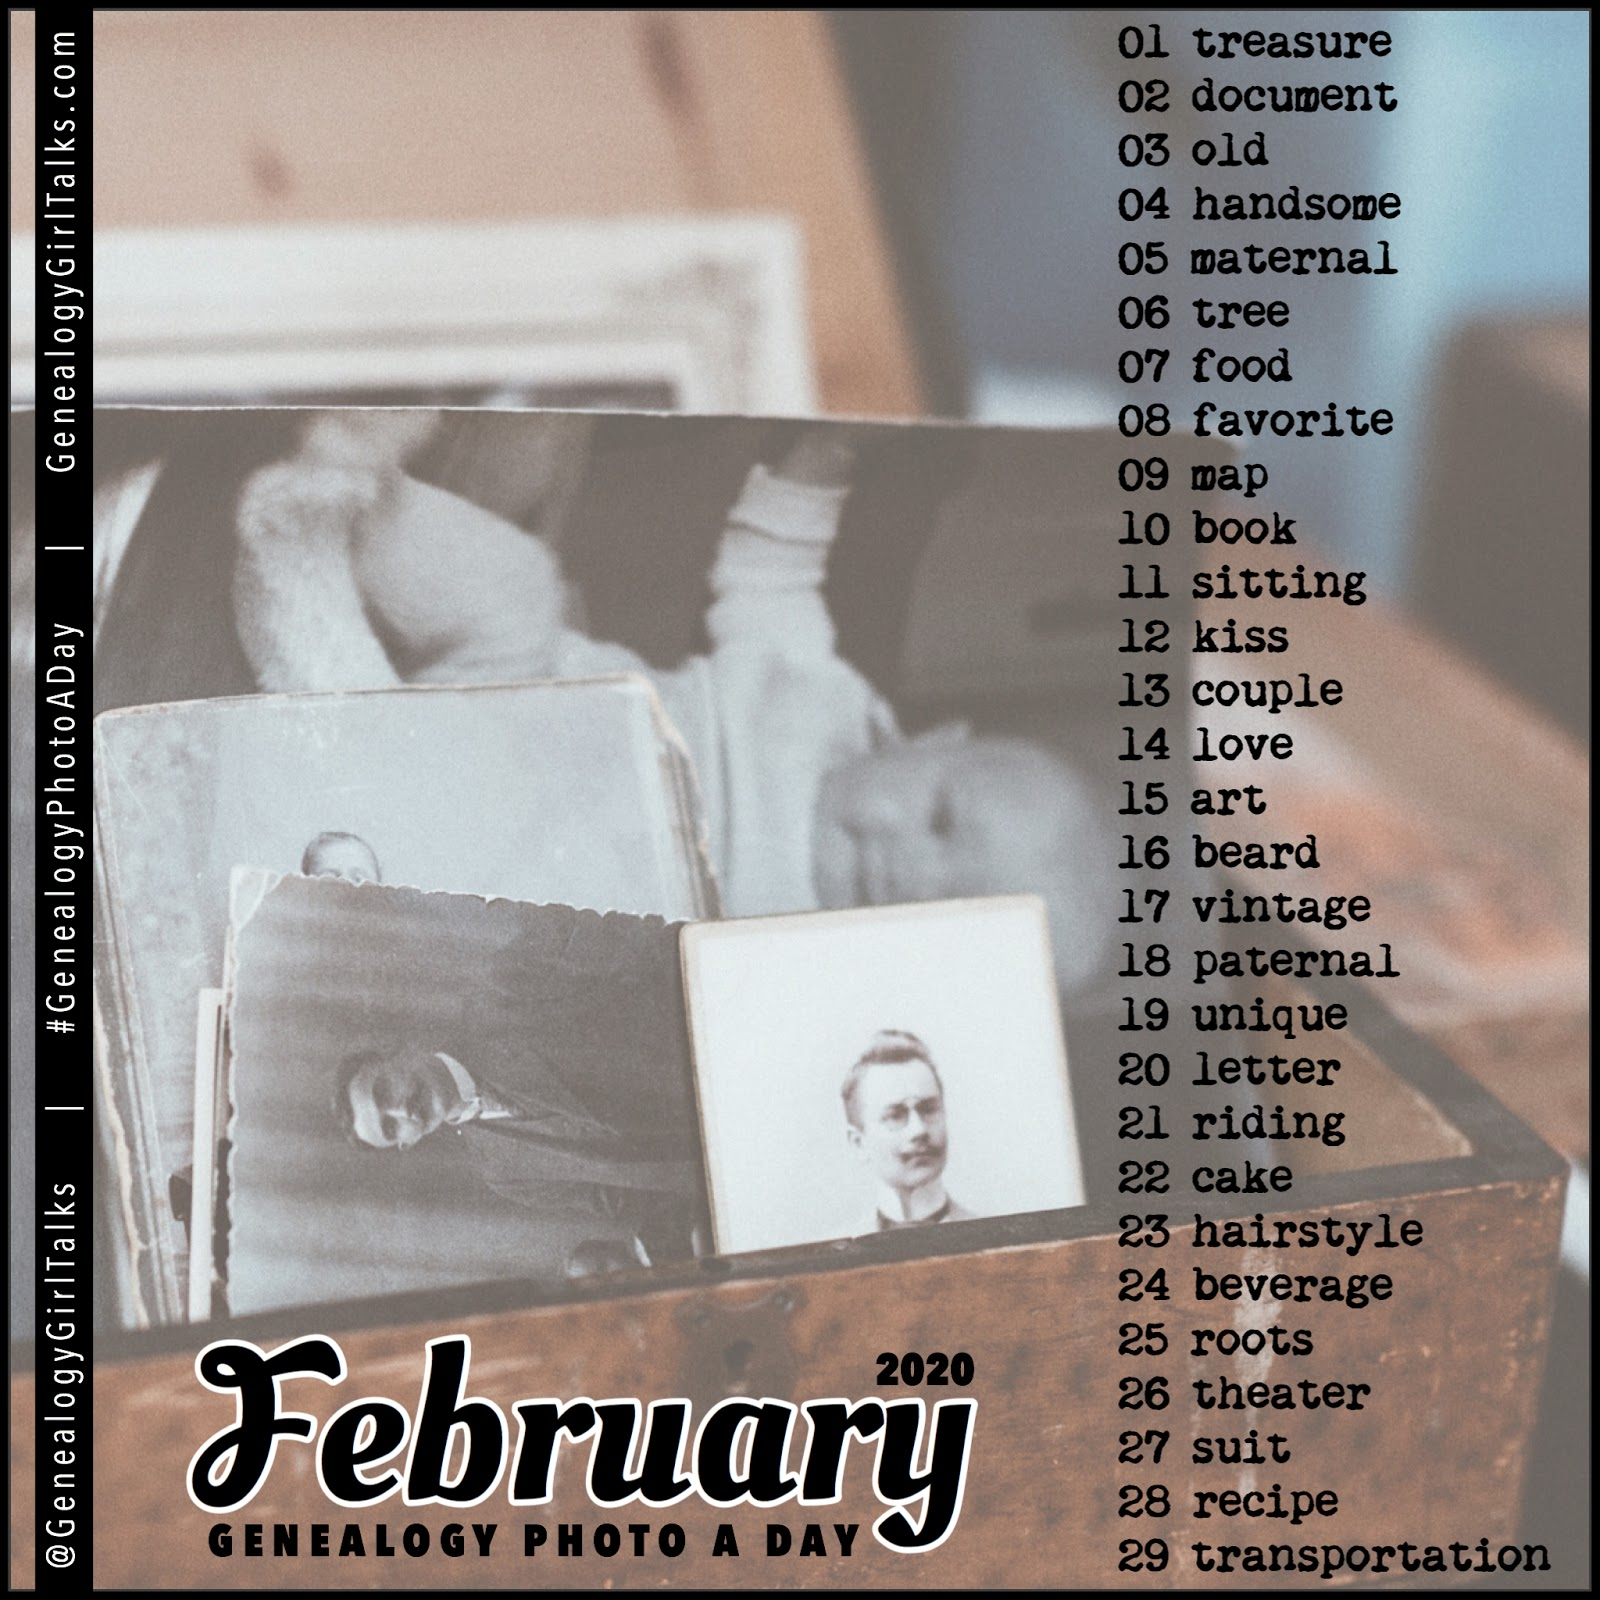 February 2020 Genealogy Photo A Day daily prompts from Genealogy Girl Talks #Genealogy #FamilyHistory #GenealogyPhotoADay